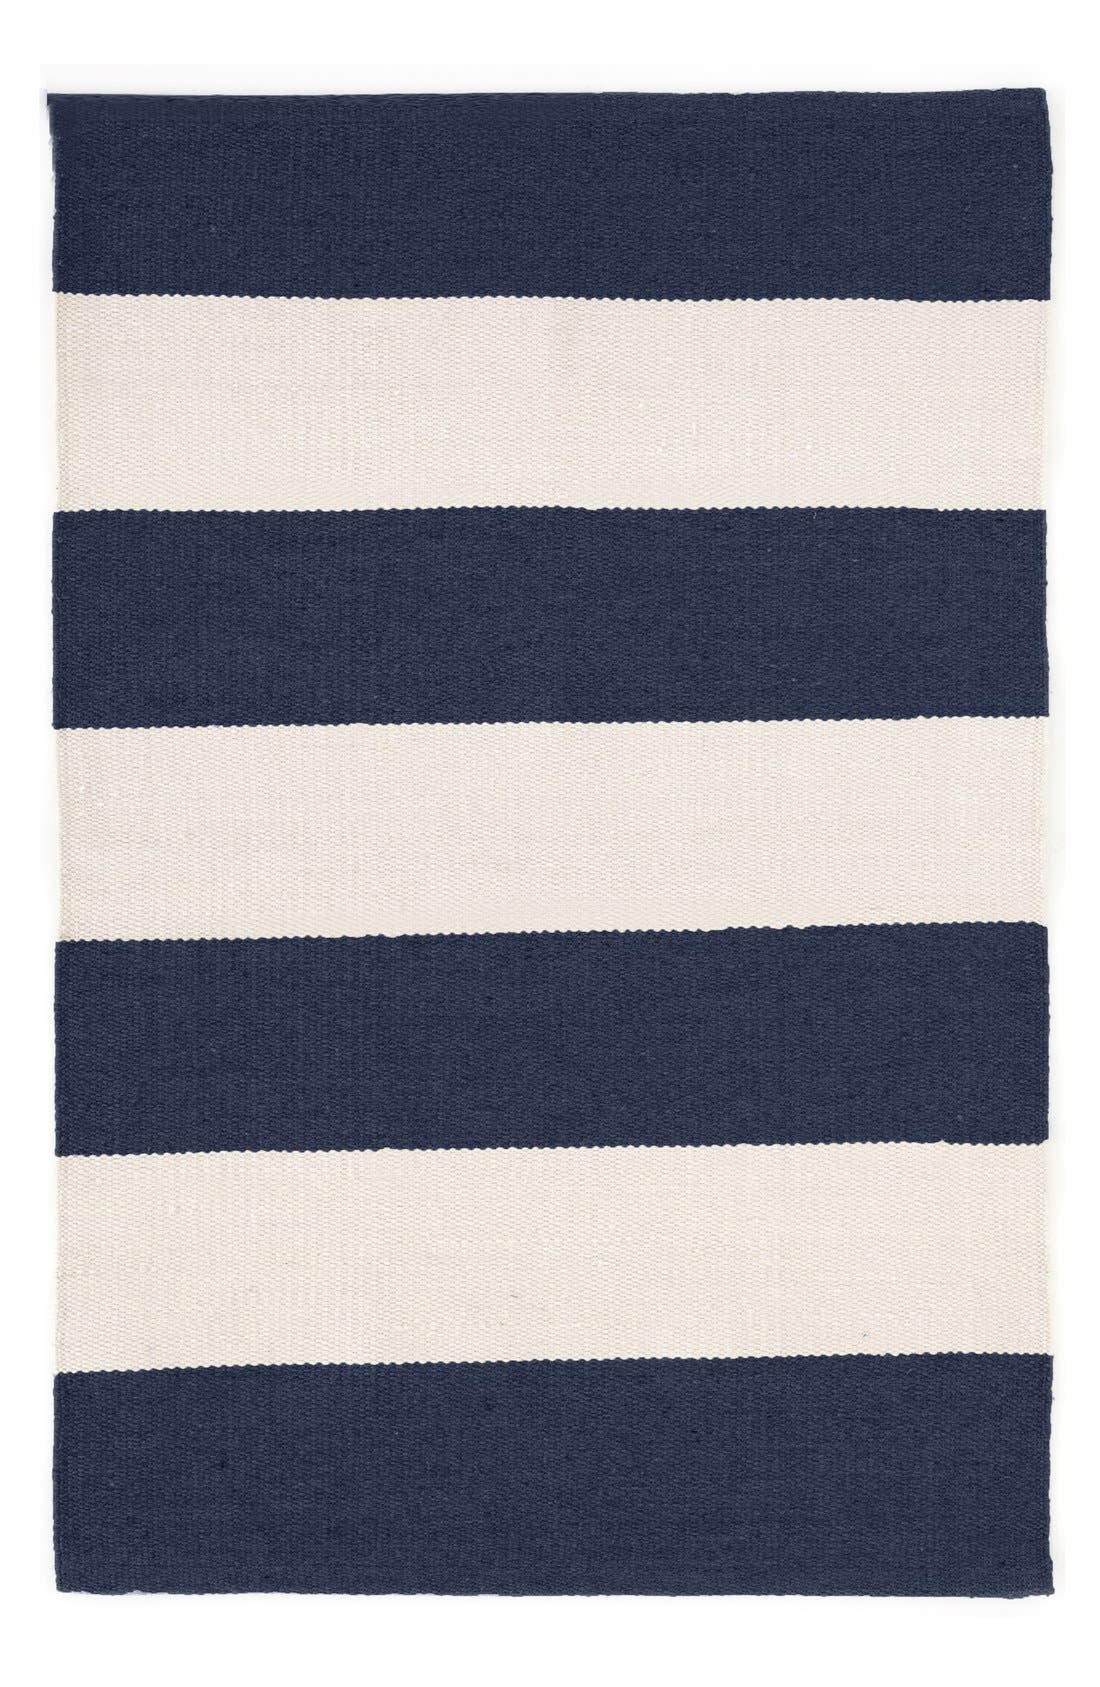 'Falls Village Stripe' Rug,                             Main thumbnail 1, color,                             Navy